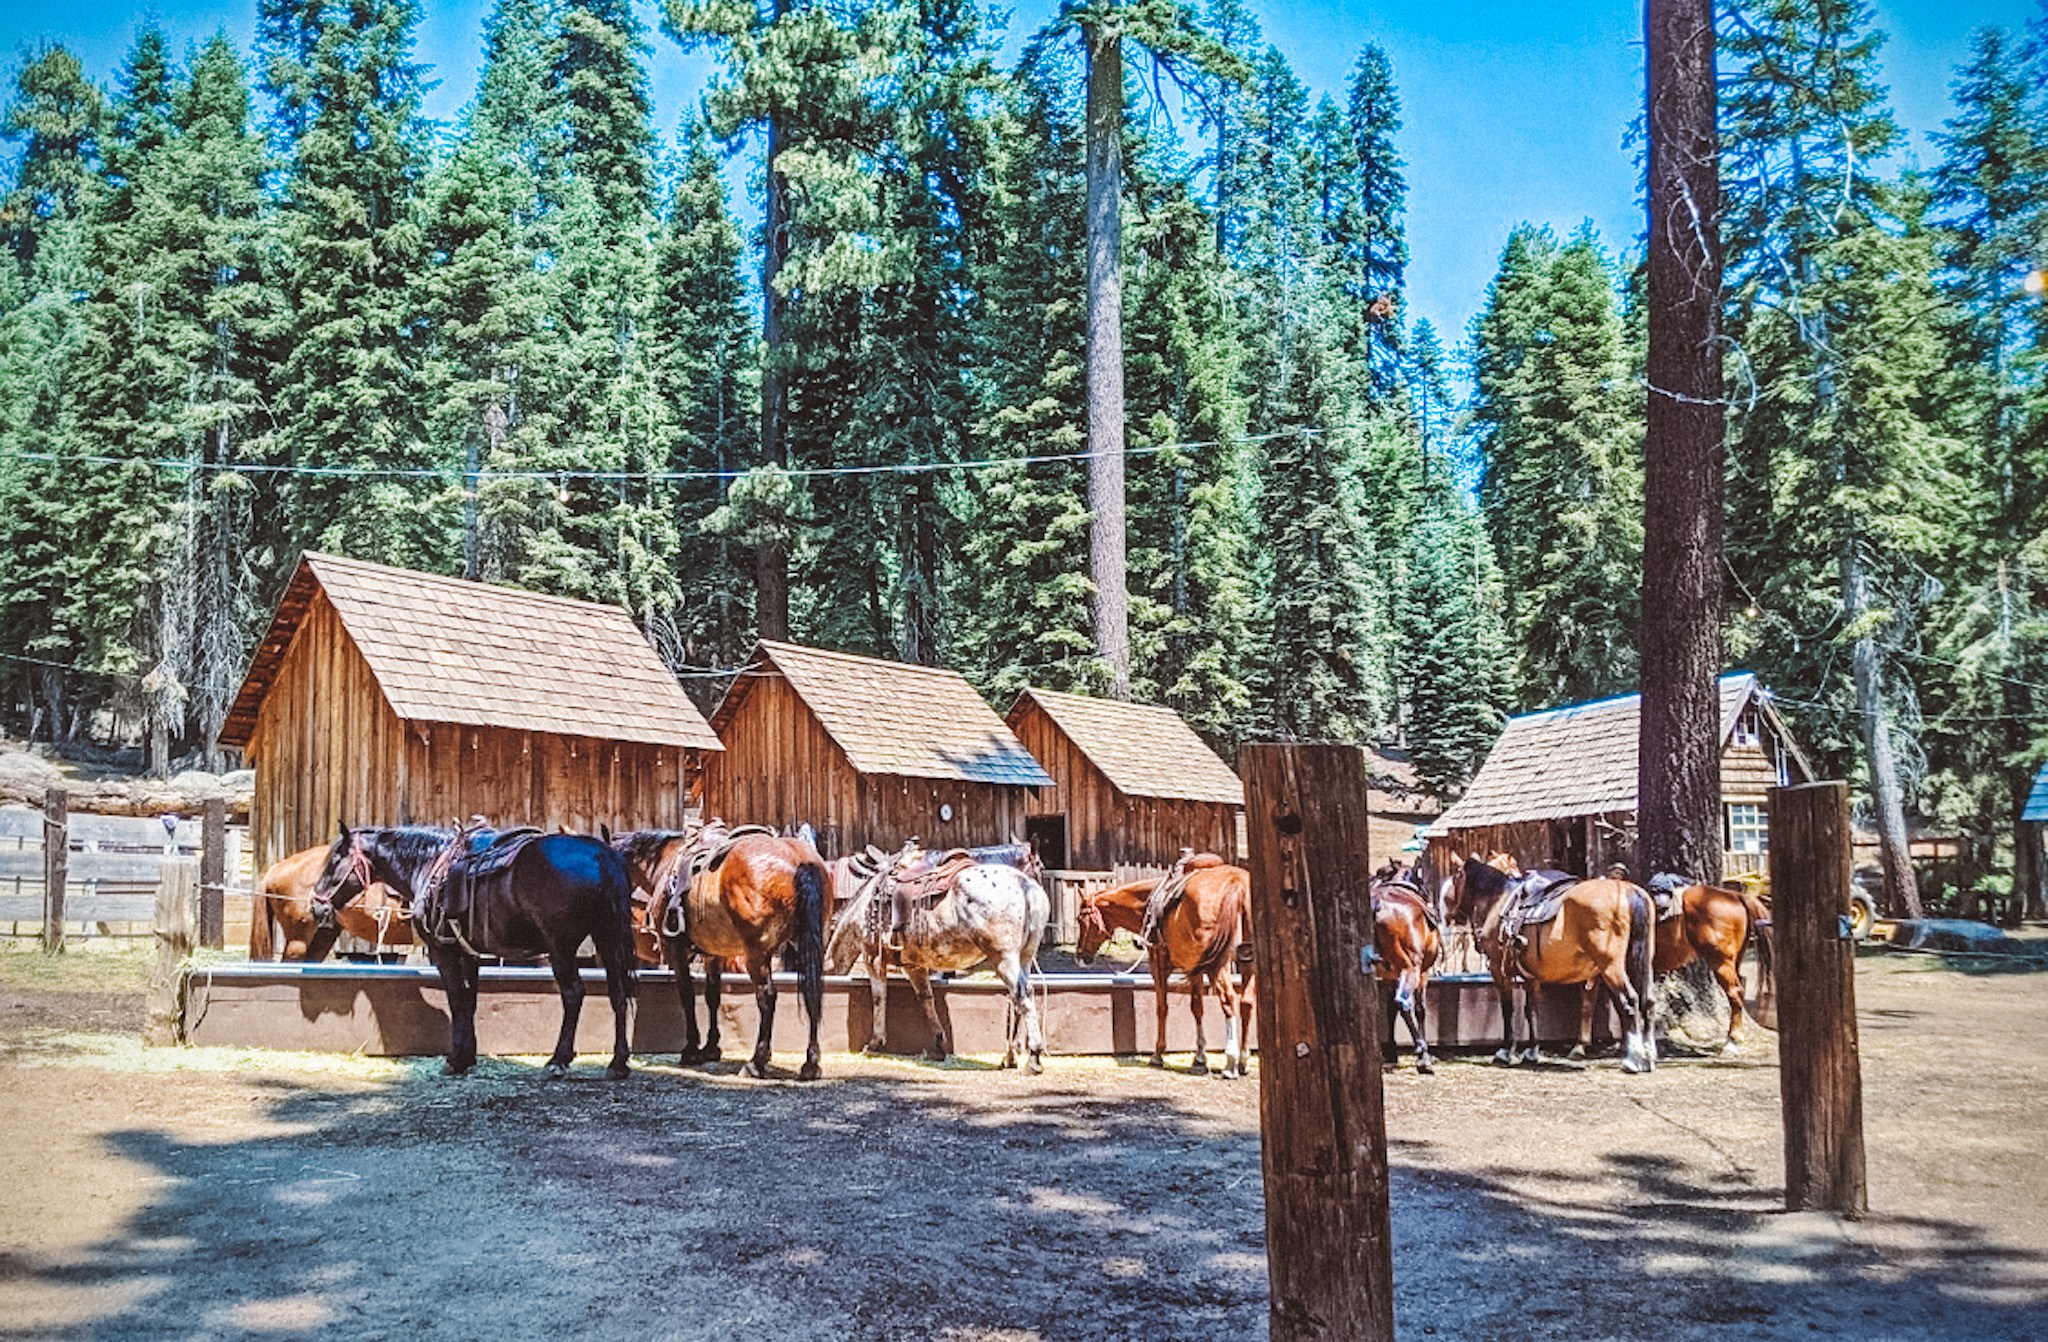 Equines & Earth – June 2021 Day Trip